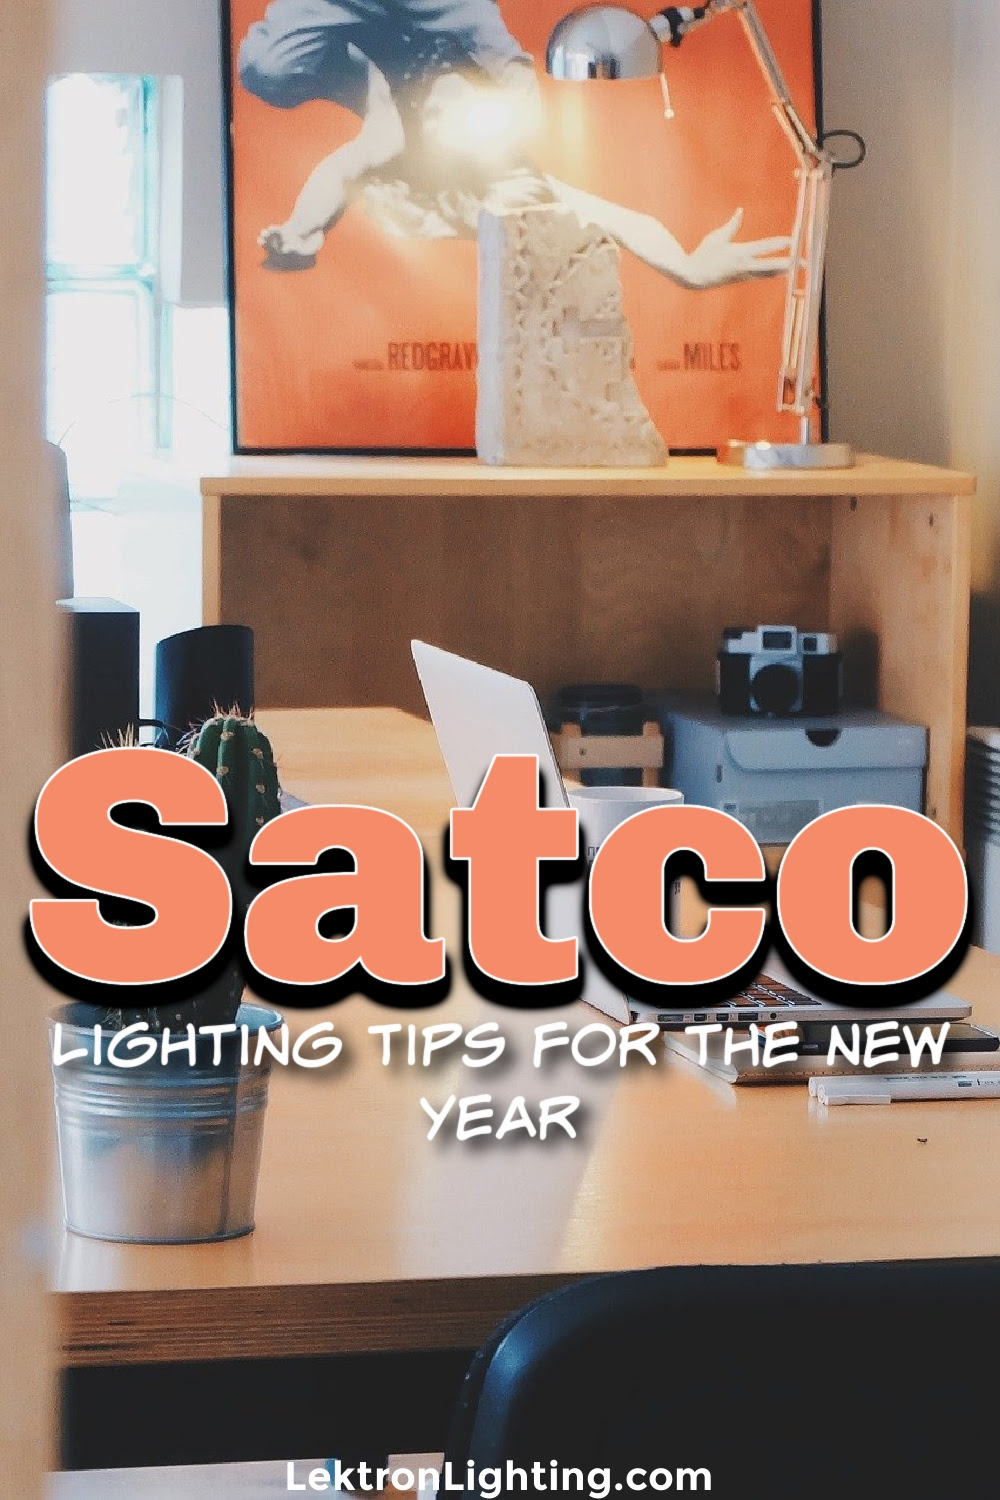 Satco lighting tips for the new year can really make a difference in your bottom line and in many other aspects of your business.